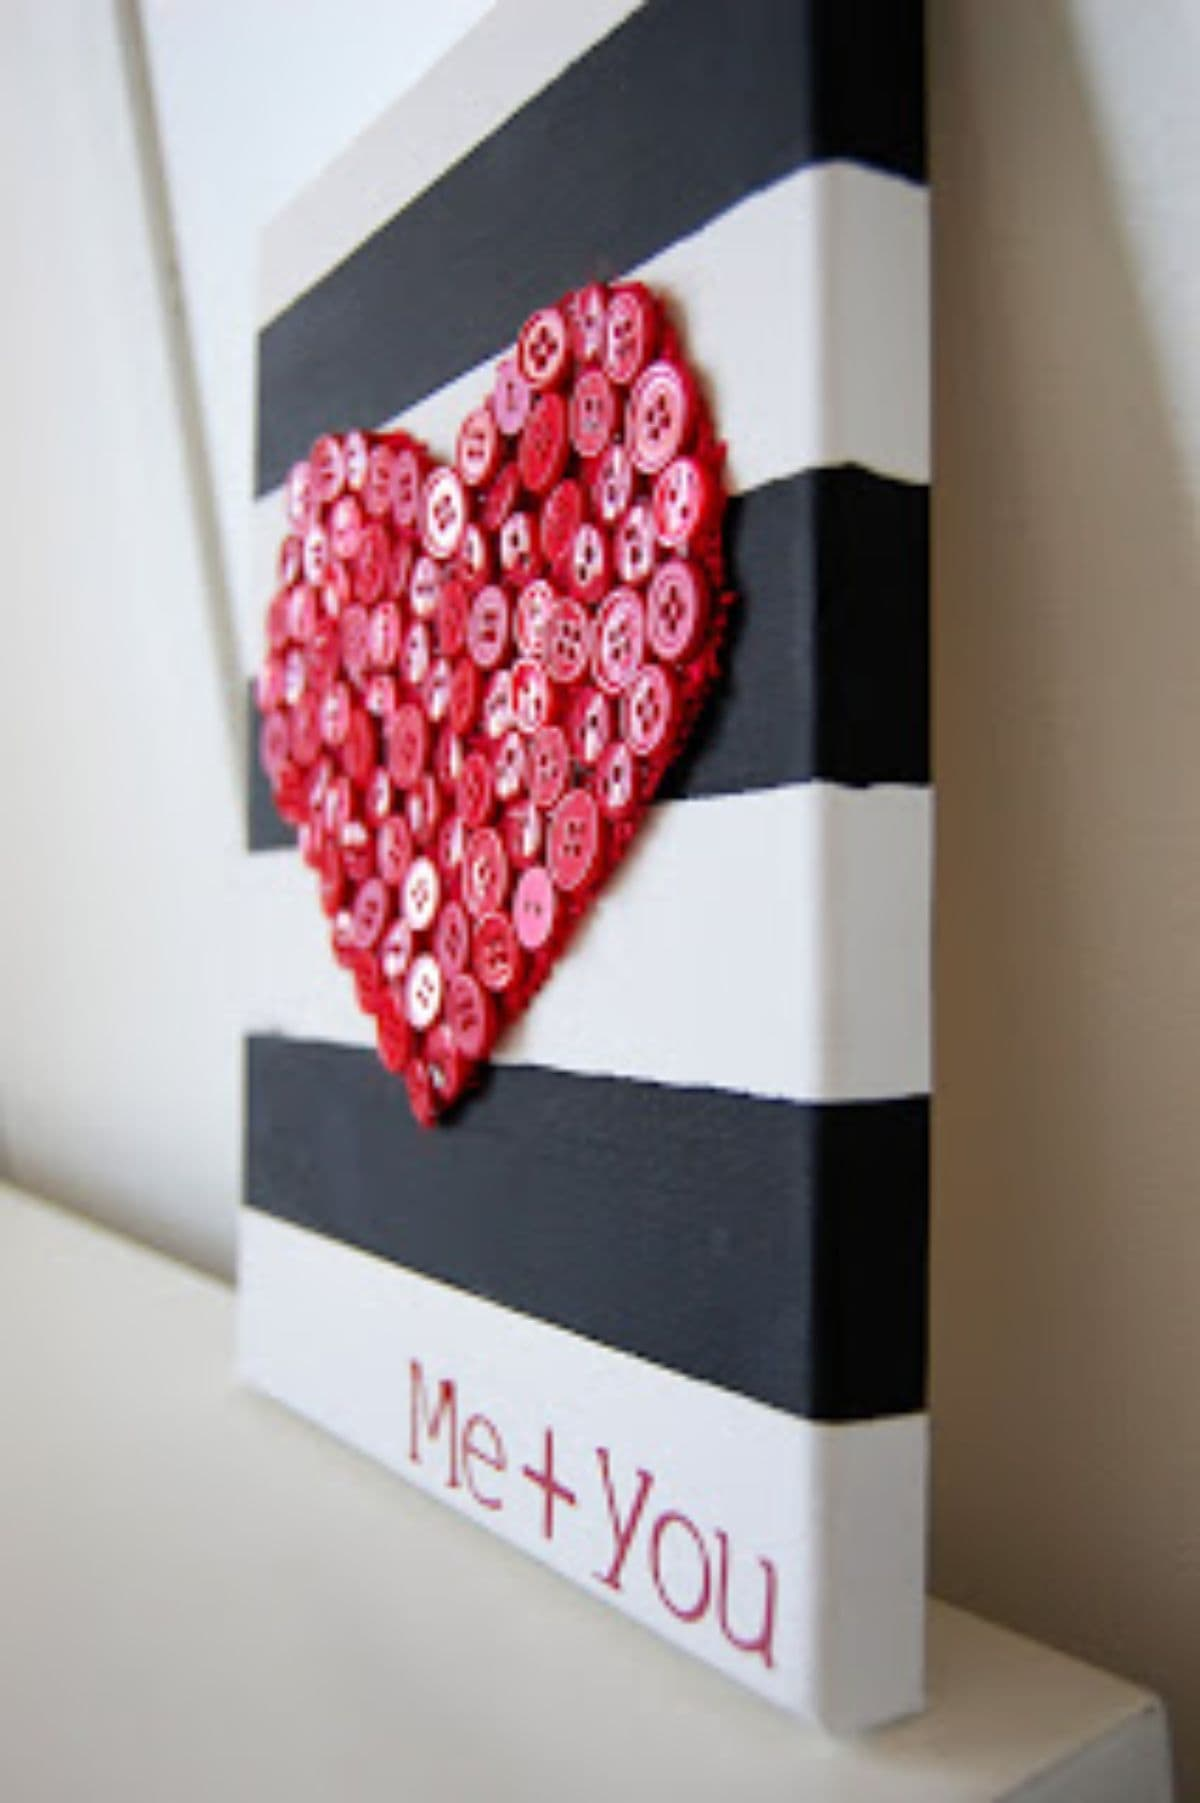 "a side-on image of a blacj and white striped square hanging from a wall. On the front of the square is a heart shape made of red buttons. Underneath is the red text ""ME + YOU"""